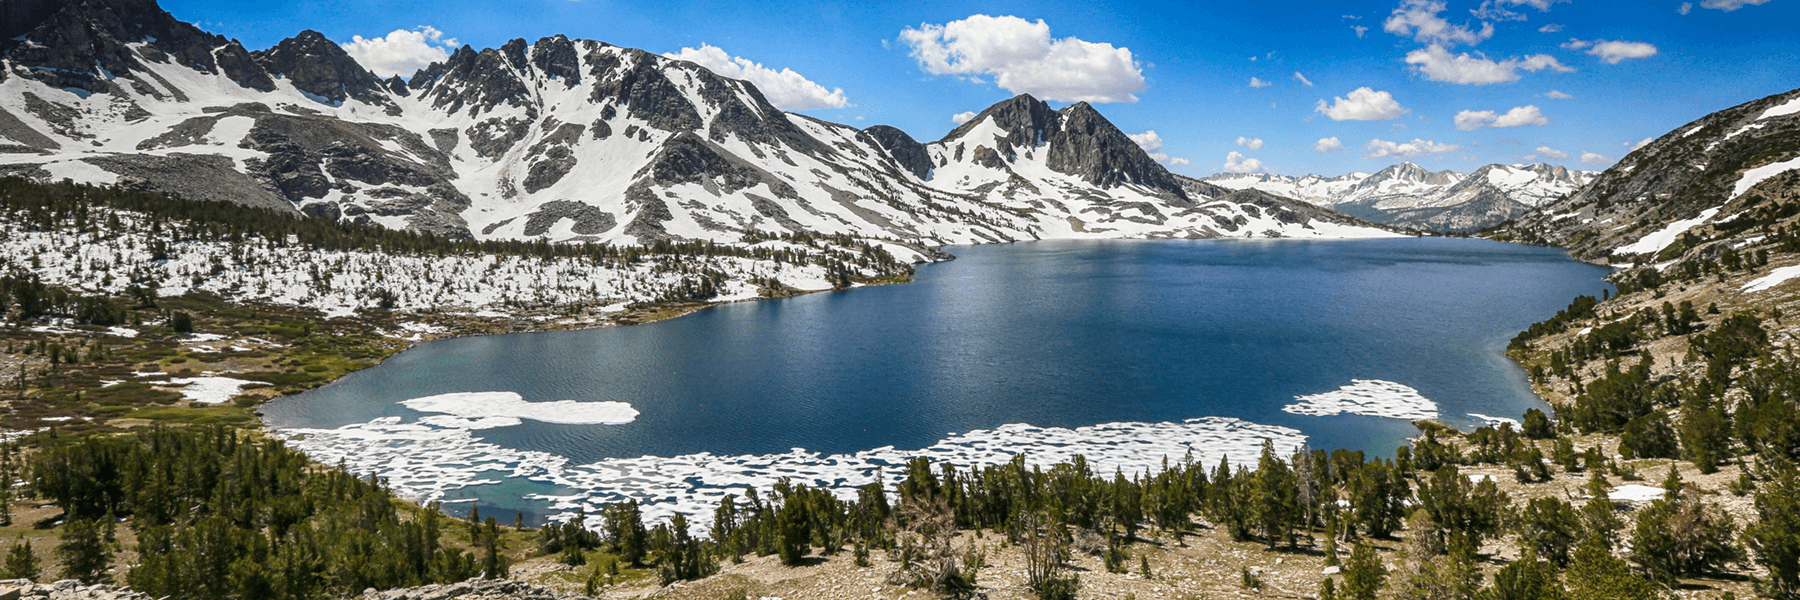 Duck Lake, Mammoth, California.